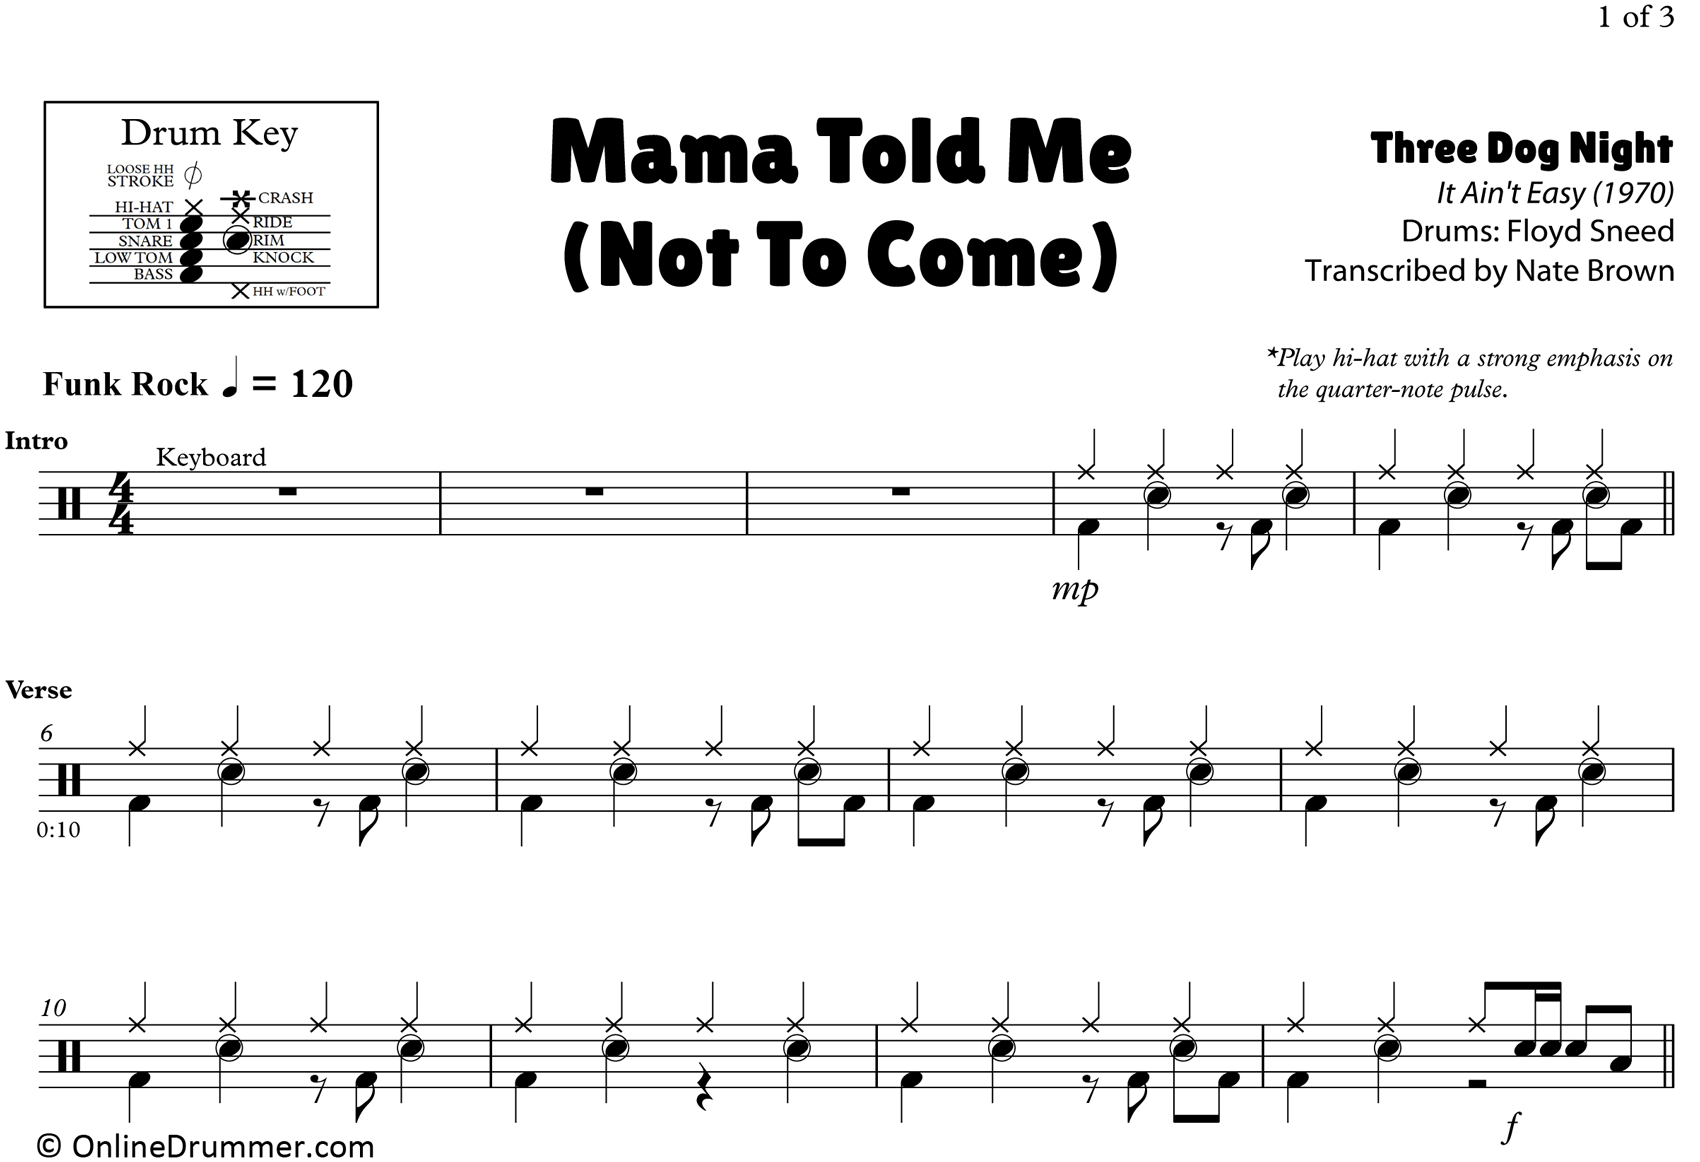 Mama Told Me (Not To Come) - Three Dog Night - Drum Sheet Music